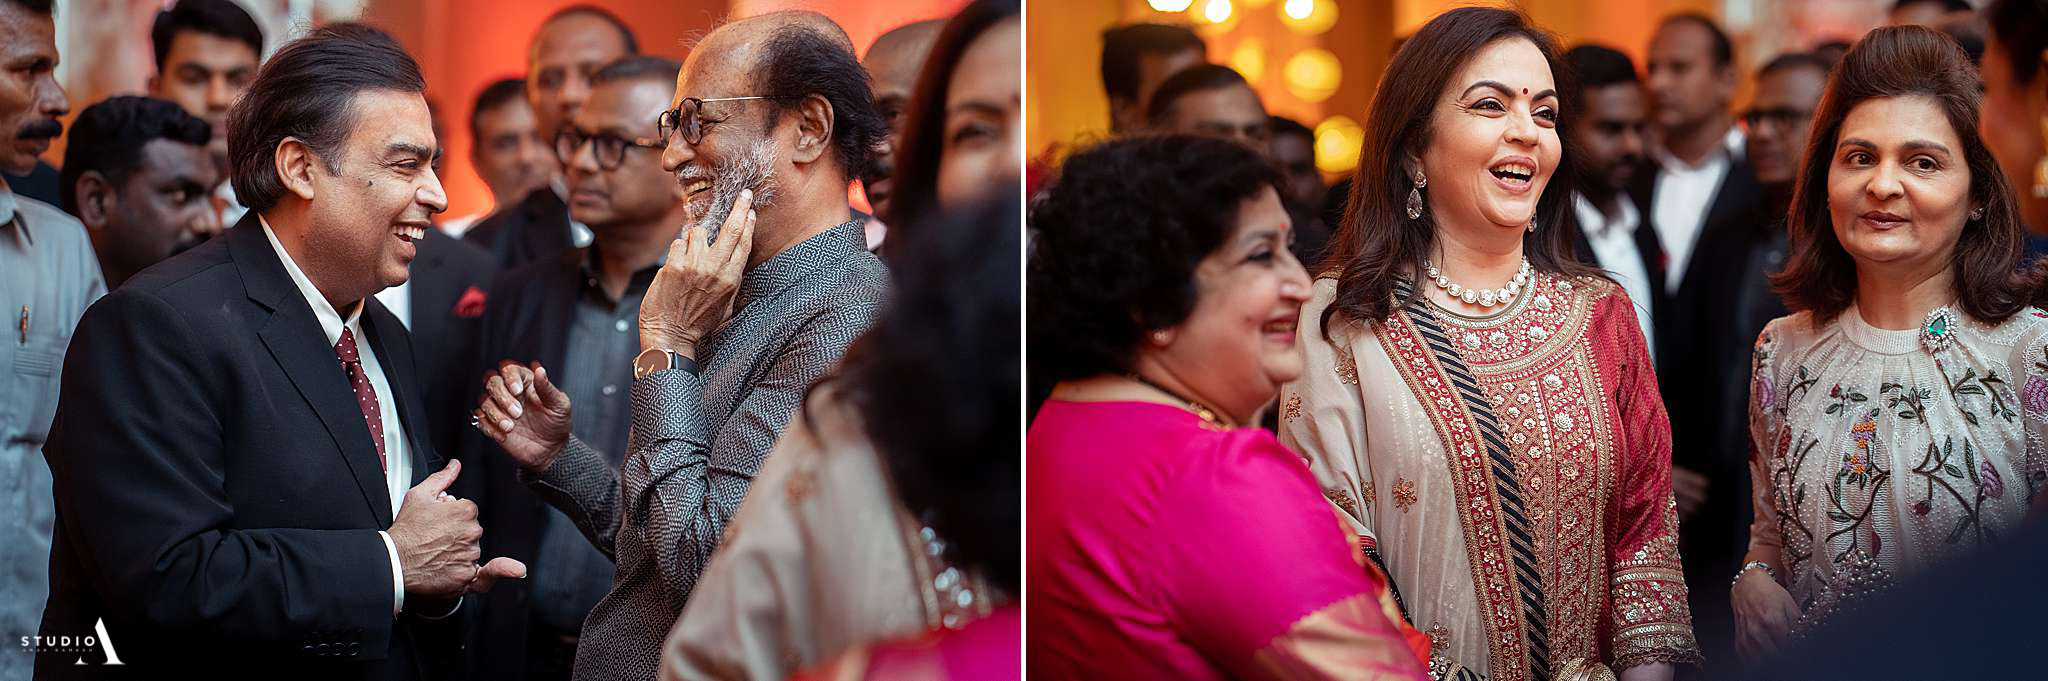 vishagan-soundarya-Rajinikanth-superstar-daughter-wedding-9